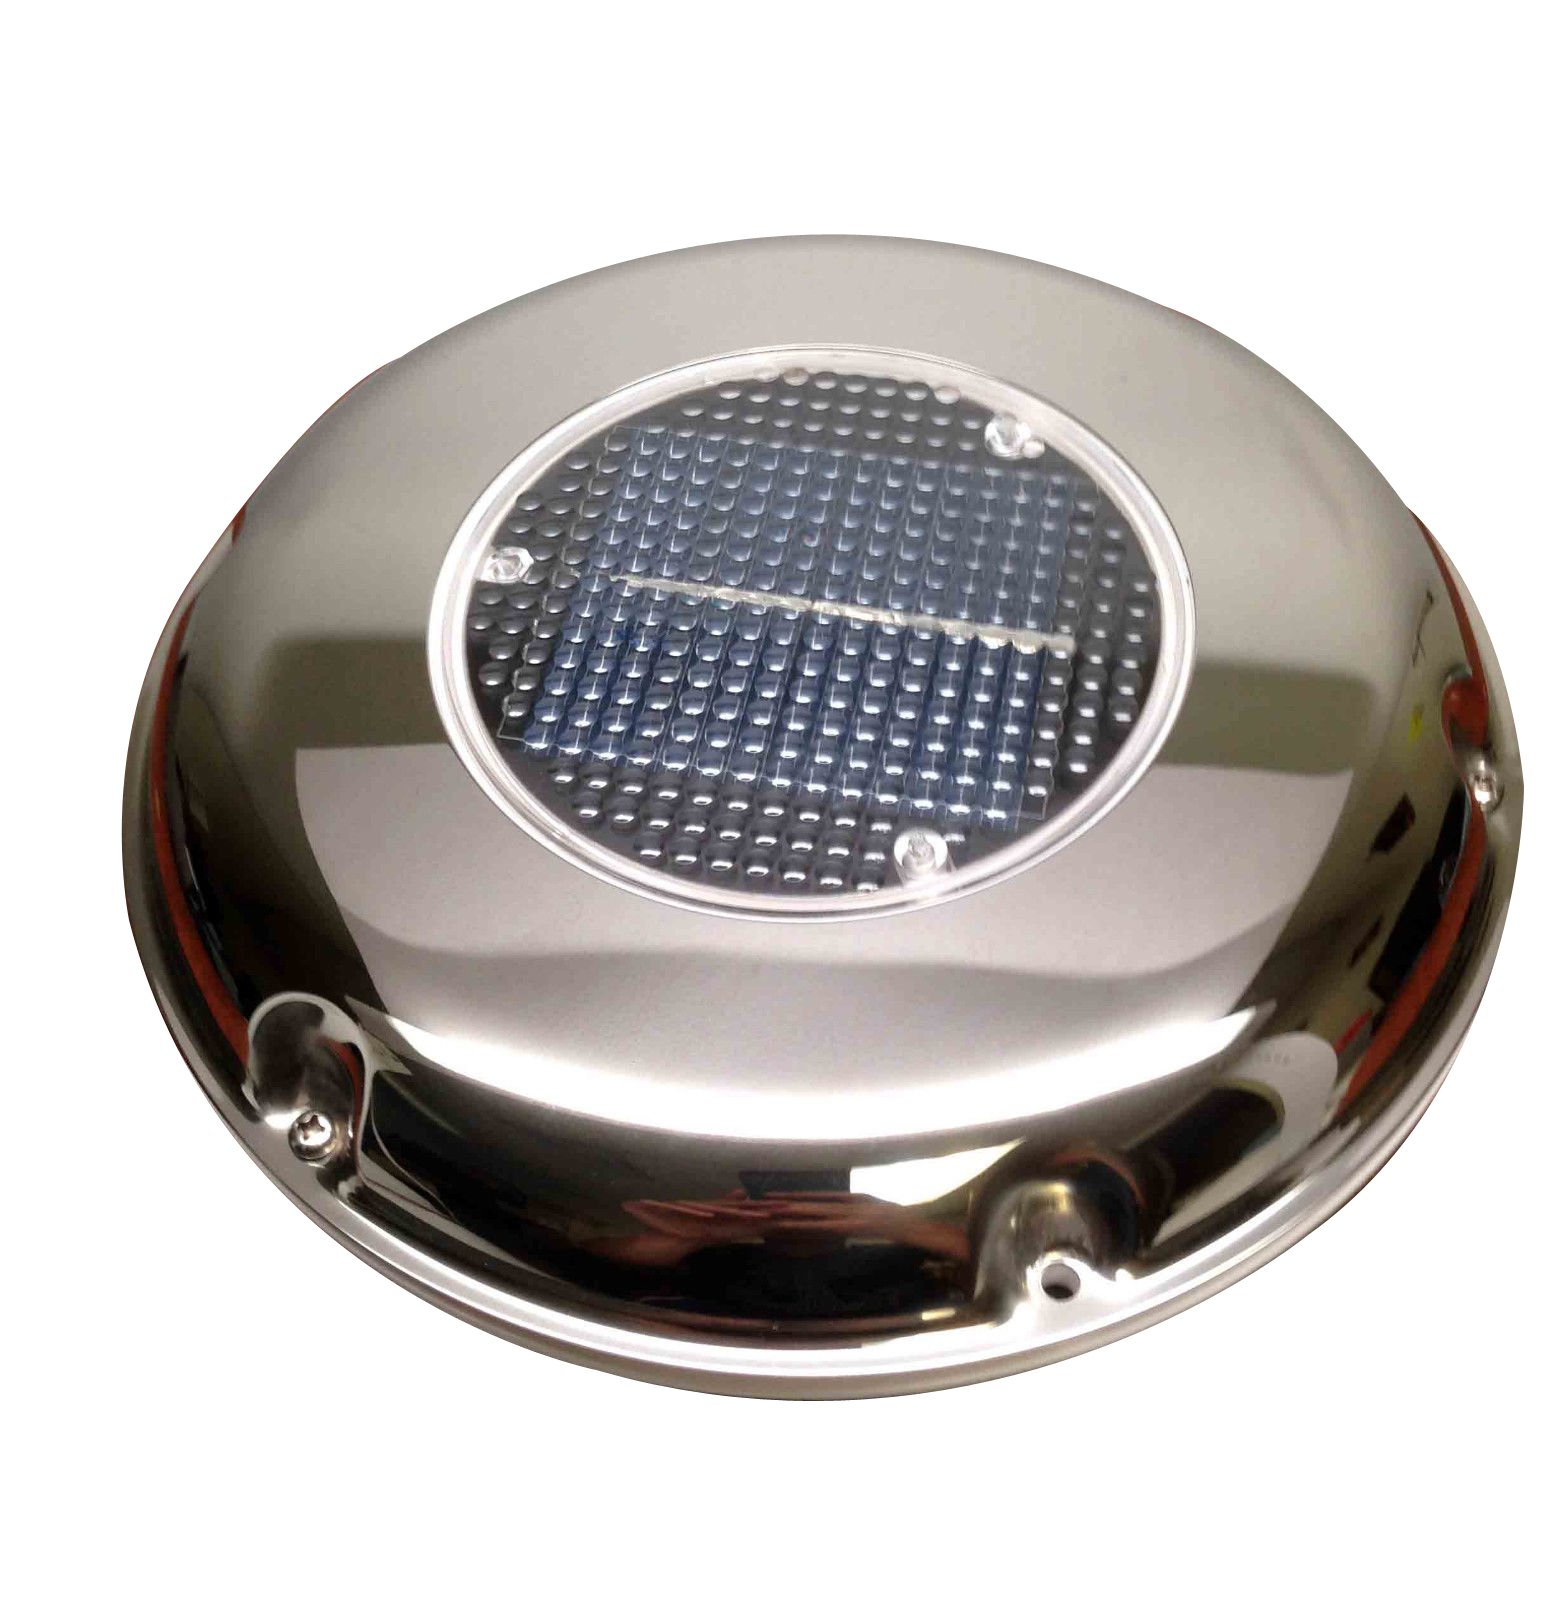 Pactrdae Marine Boat Rechargeable Solar Powered Stainless Steel Ventilator II by Pactrade Marine